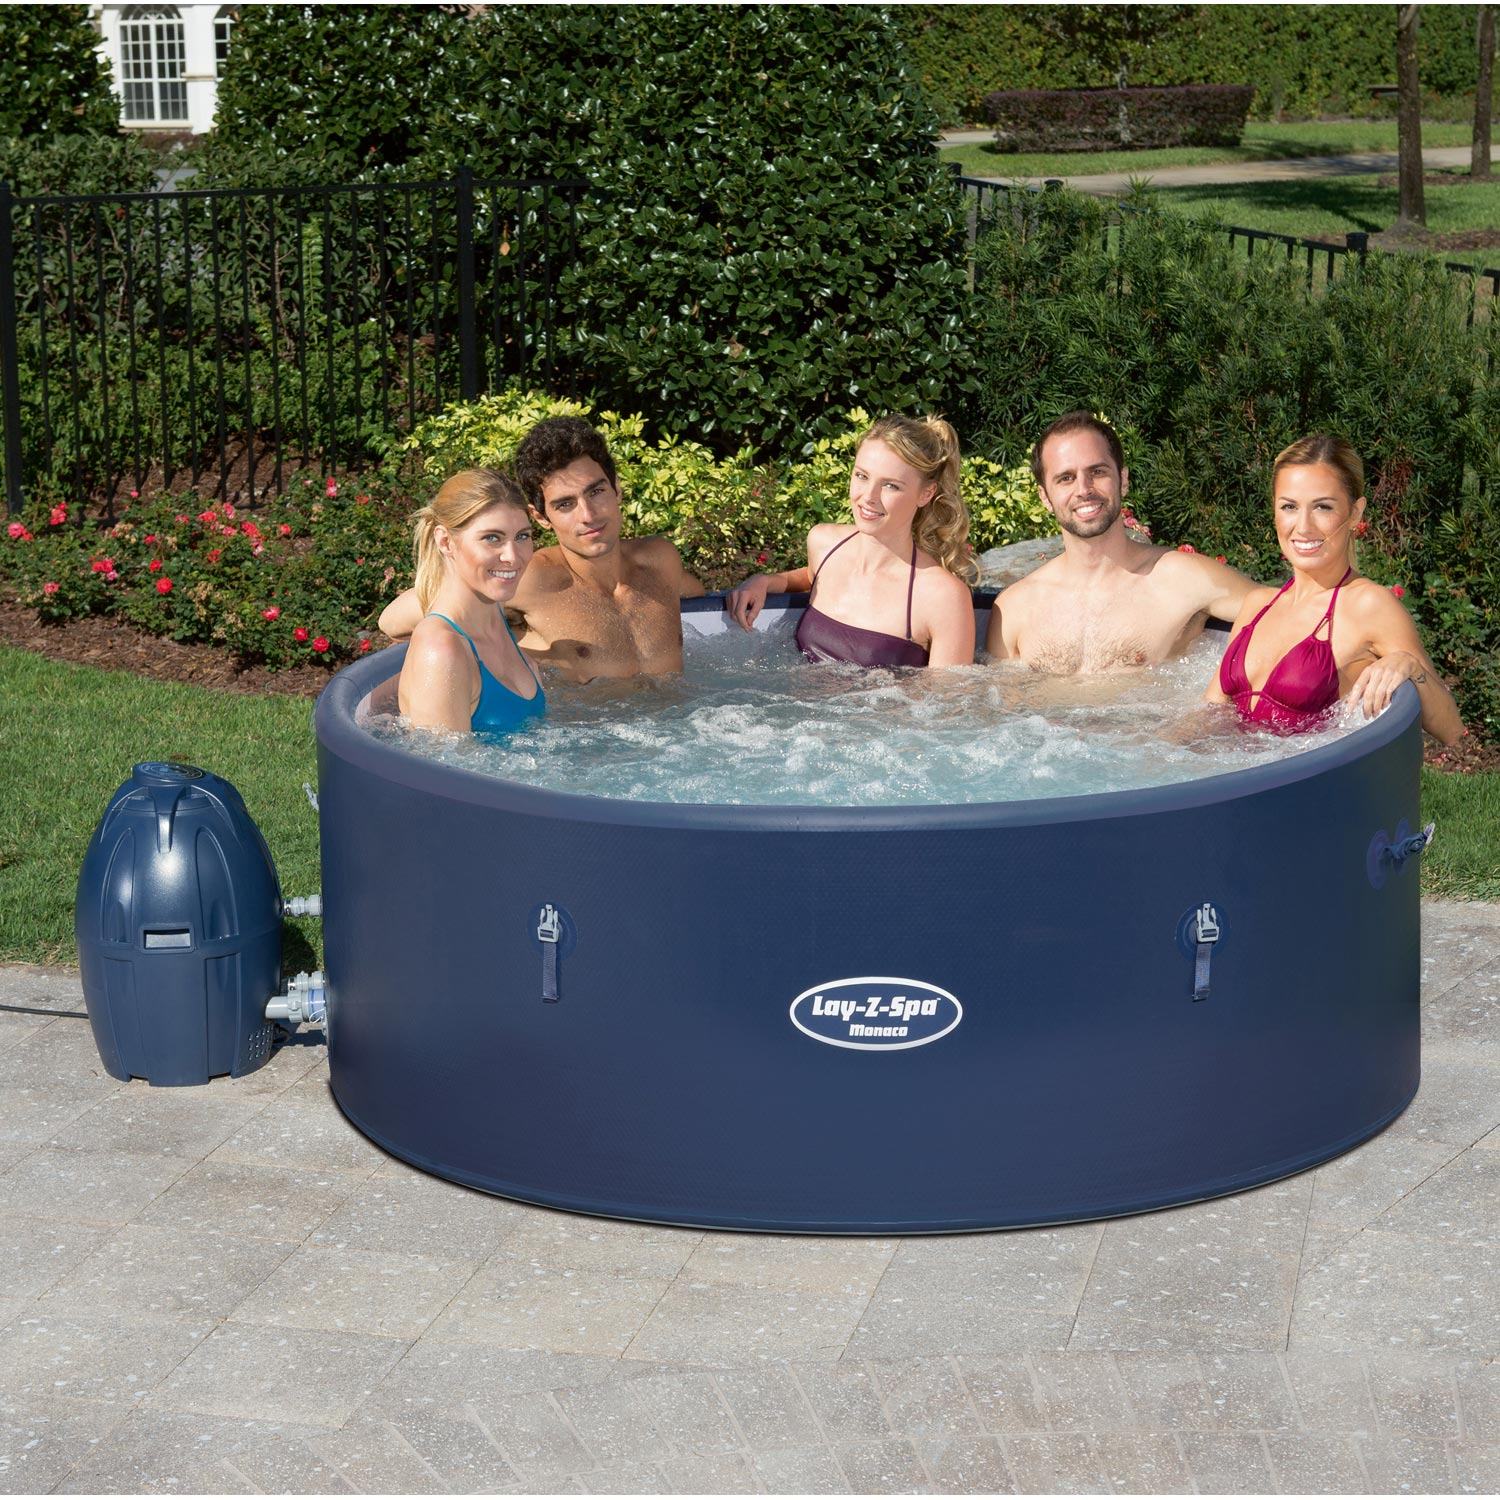 jacuzzi extrieur leroy merlin tout savoir sur les spas with jacuzzi extrieur leroy merlin. Black Bedroom Furniture Sets. Home Design Ideas